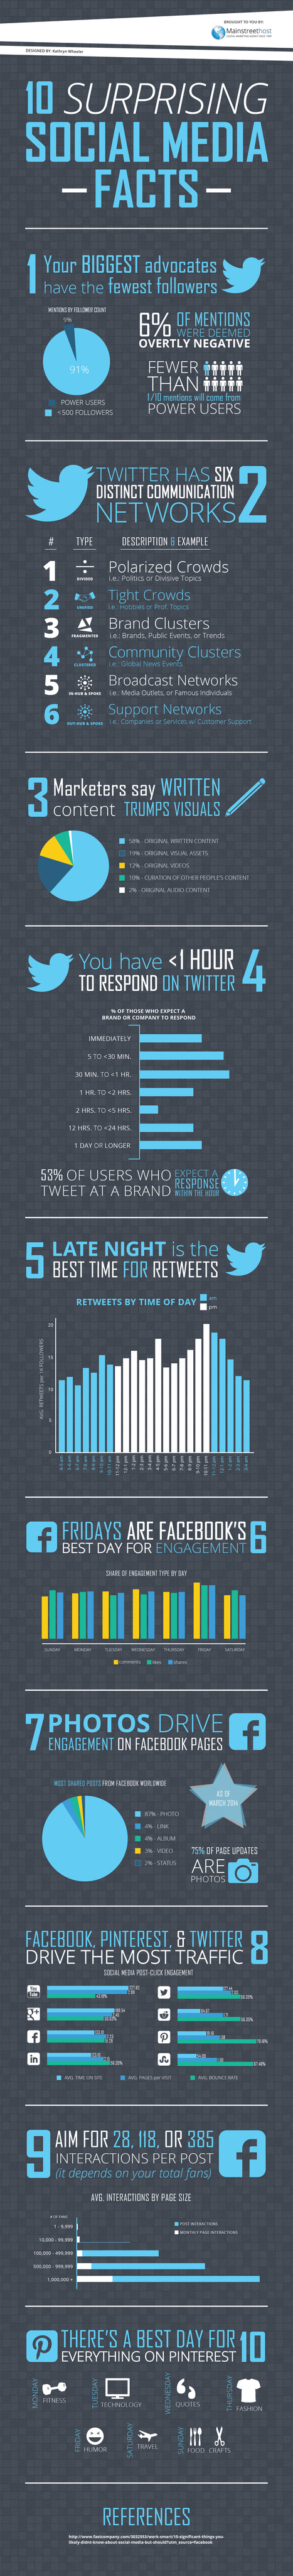 10 Surprising Social Media Facts [INFOGRAPHIC] | Café puntocom Leche | Scoop.it